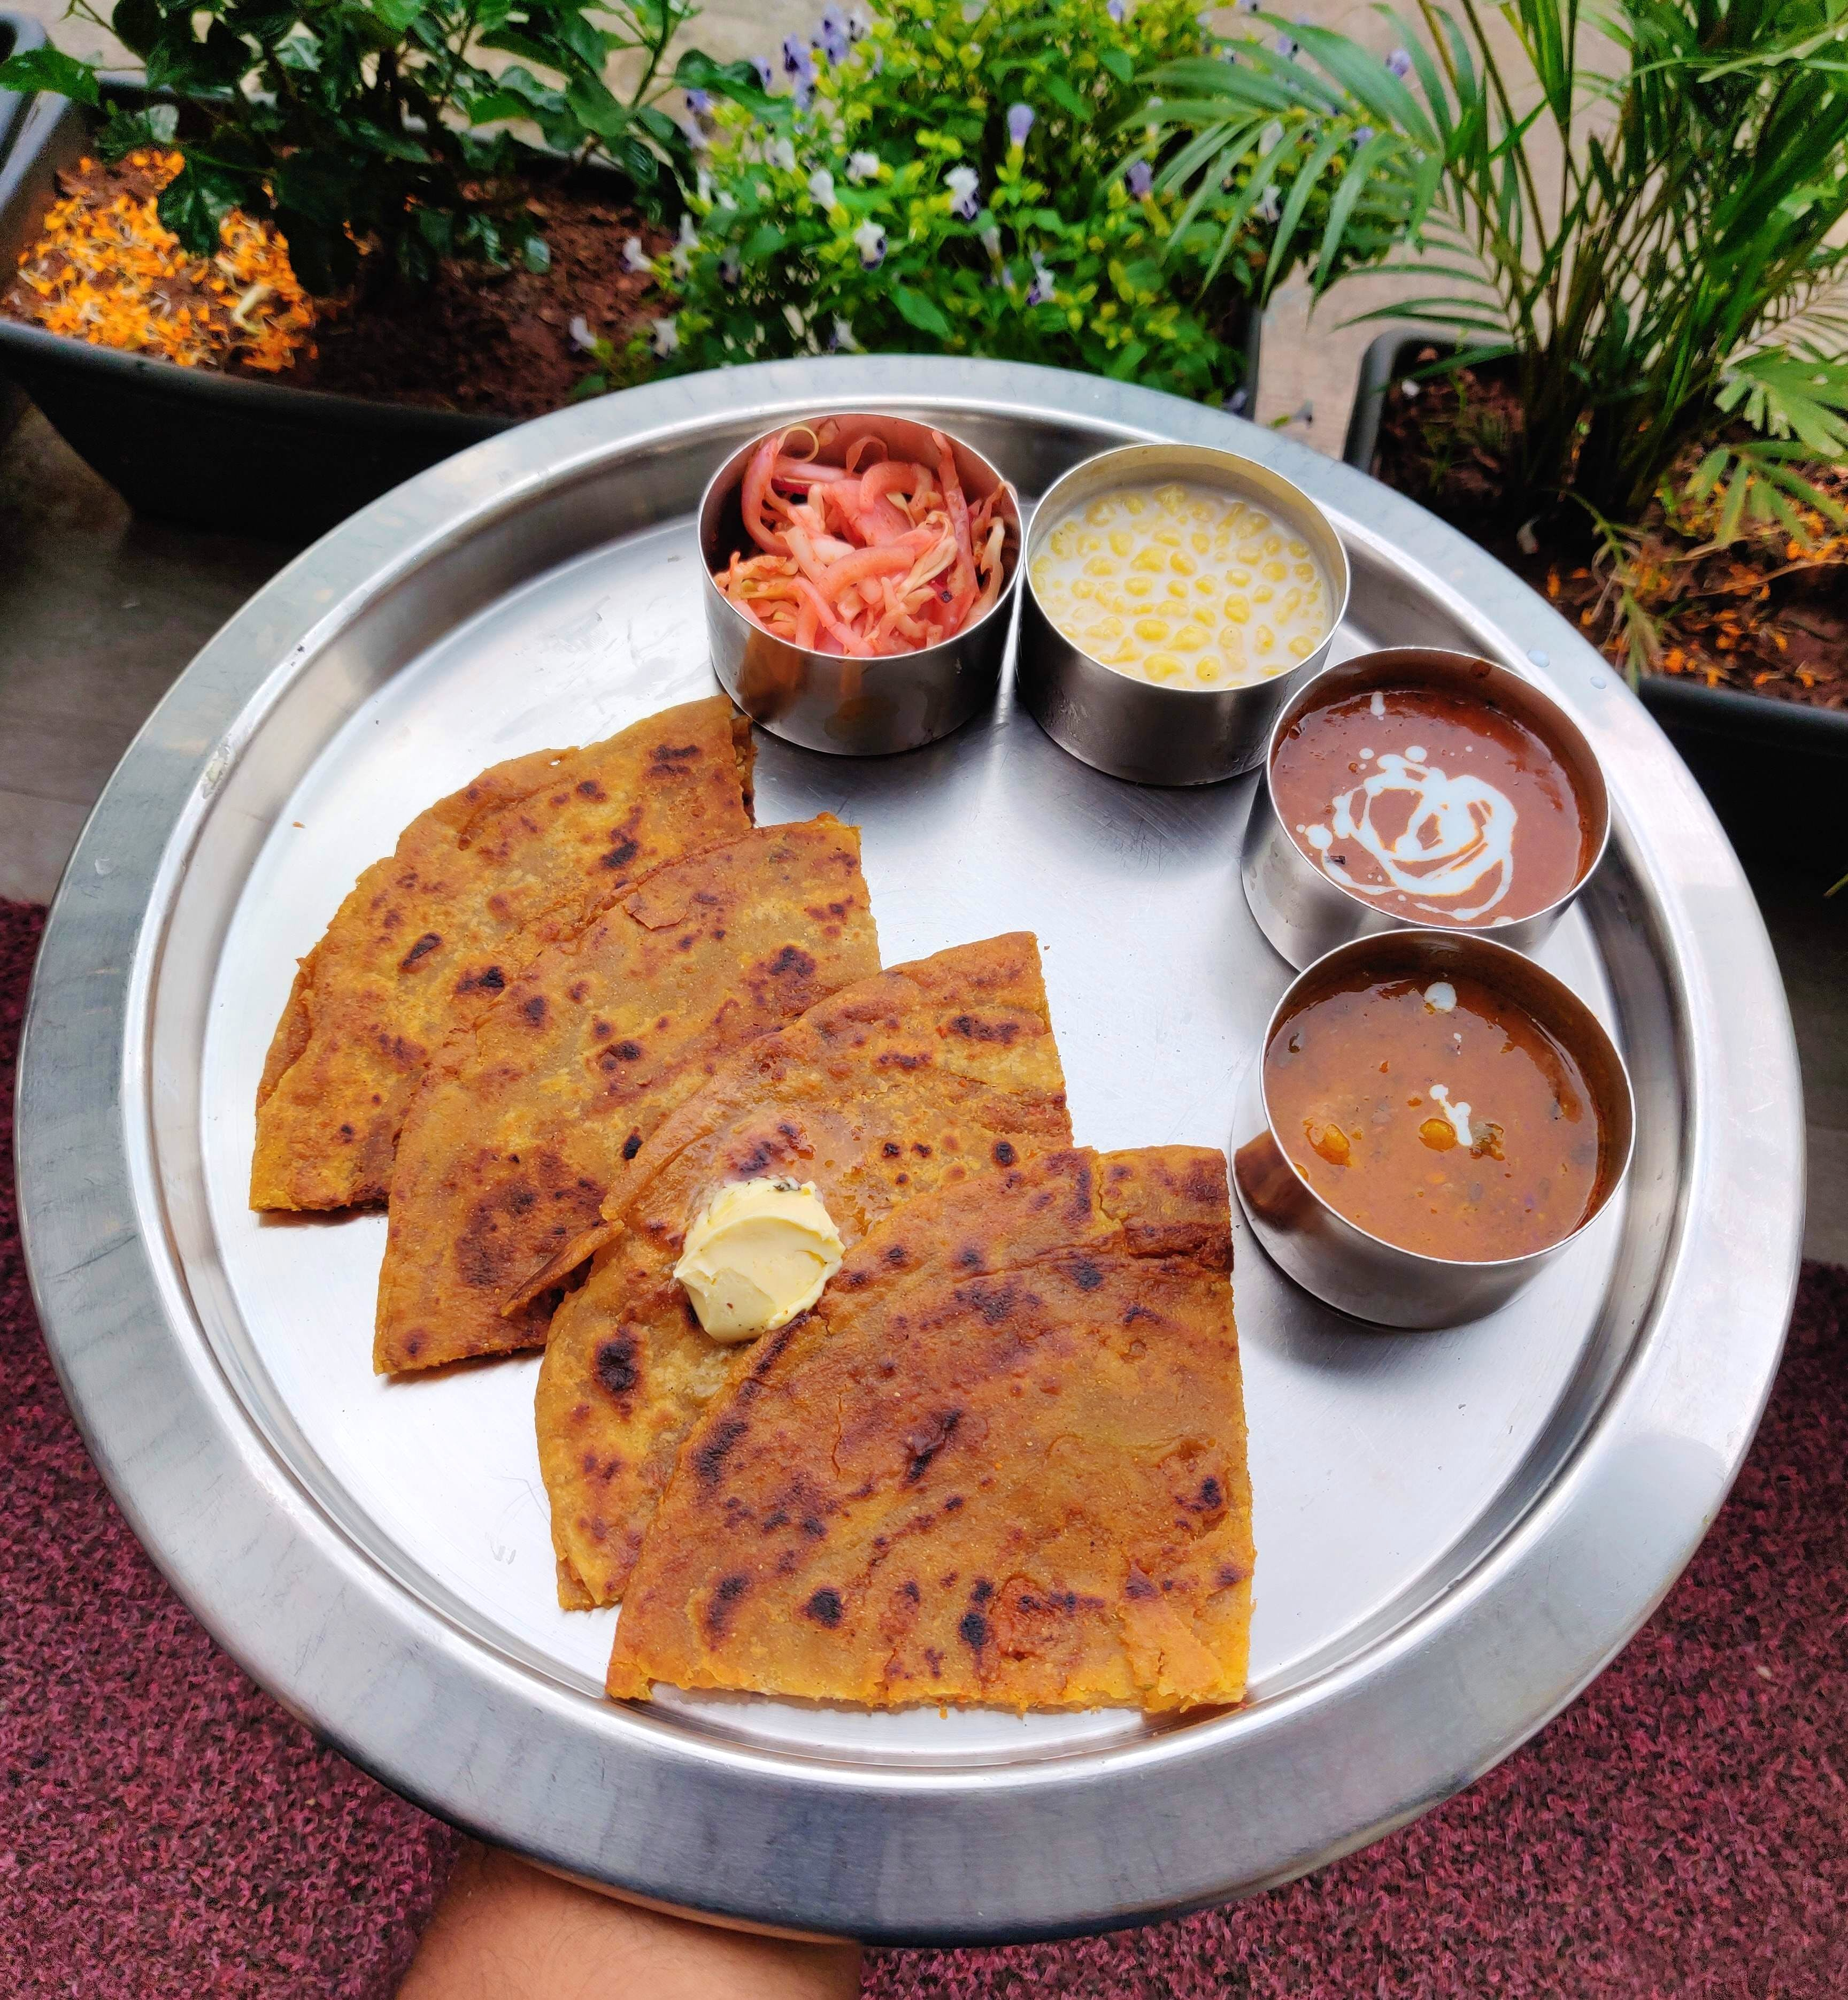 Dish,Food,Cuisine,Ingredient,Naan,Paratha,Staple food,Produce,Finger food,Roti